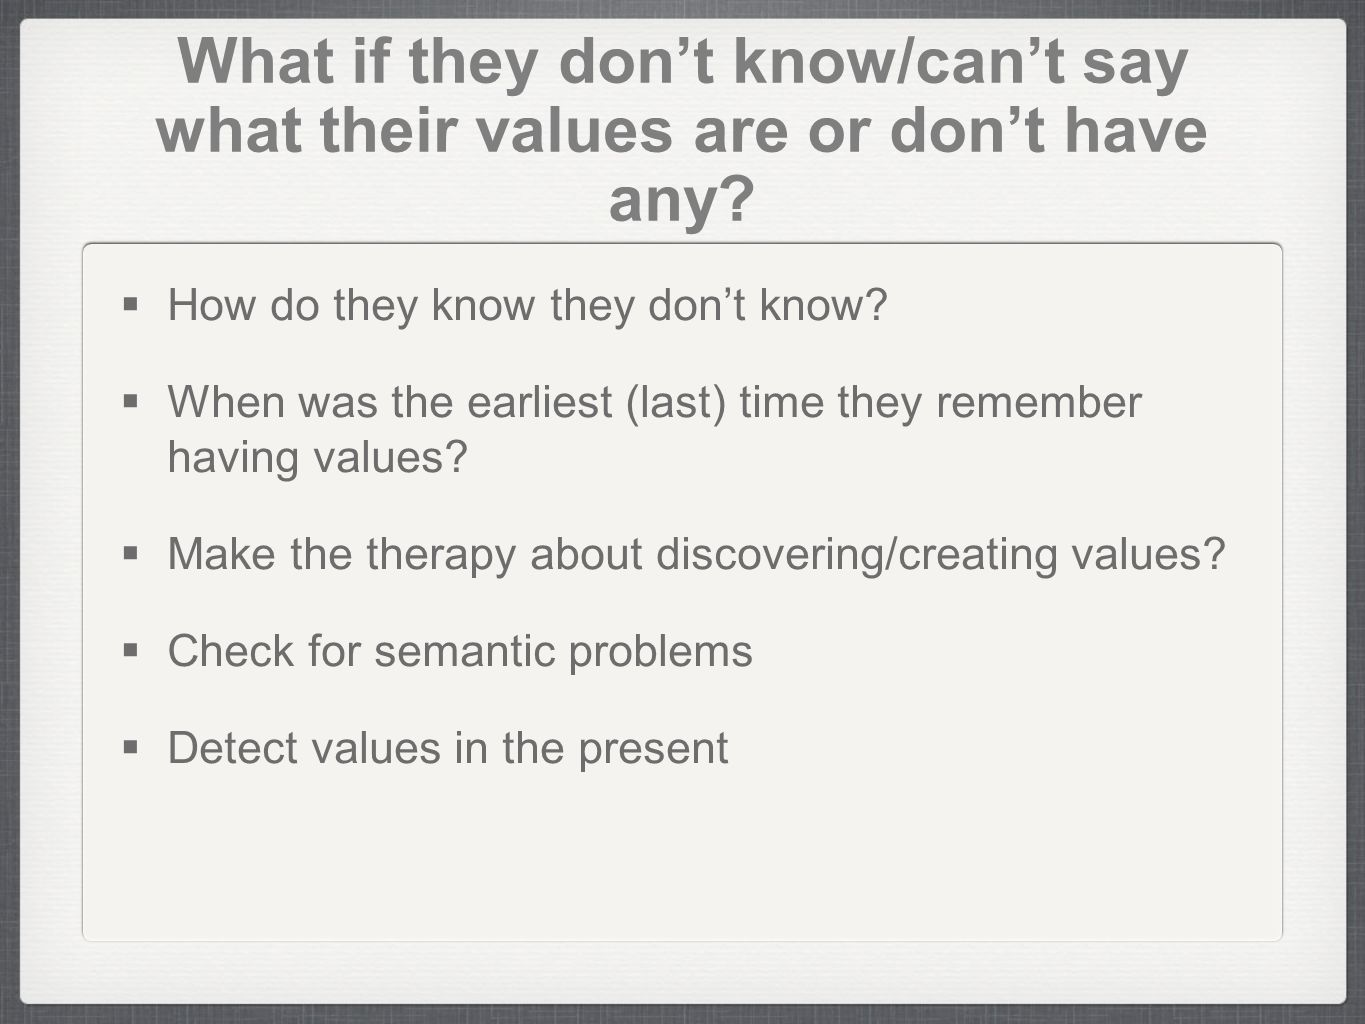 What if they dont know/cant say what their values are or dont have any? How do they know they dont know? When was the earliest (last) time they rememb